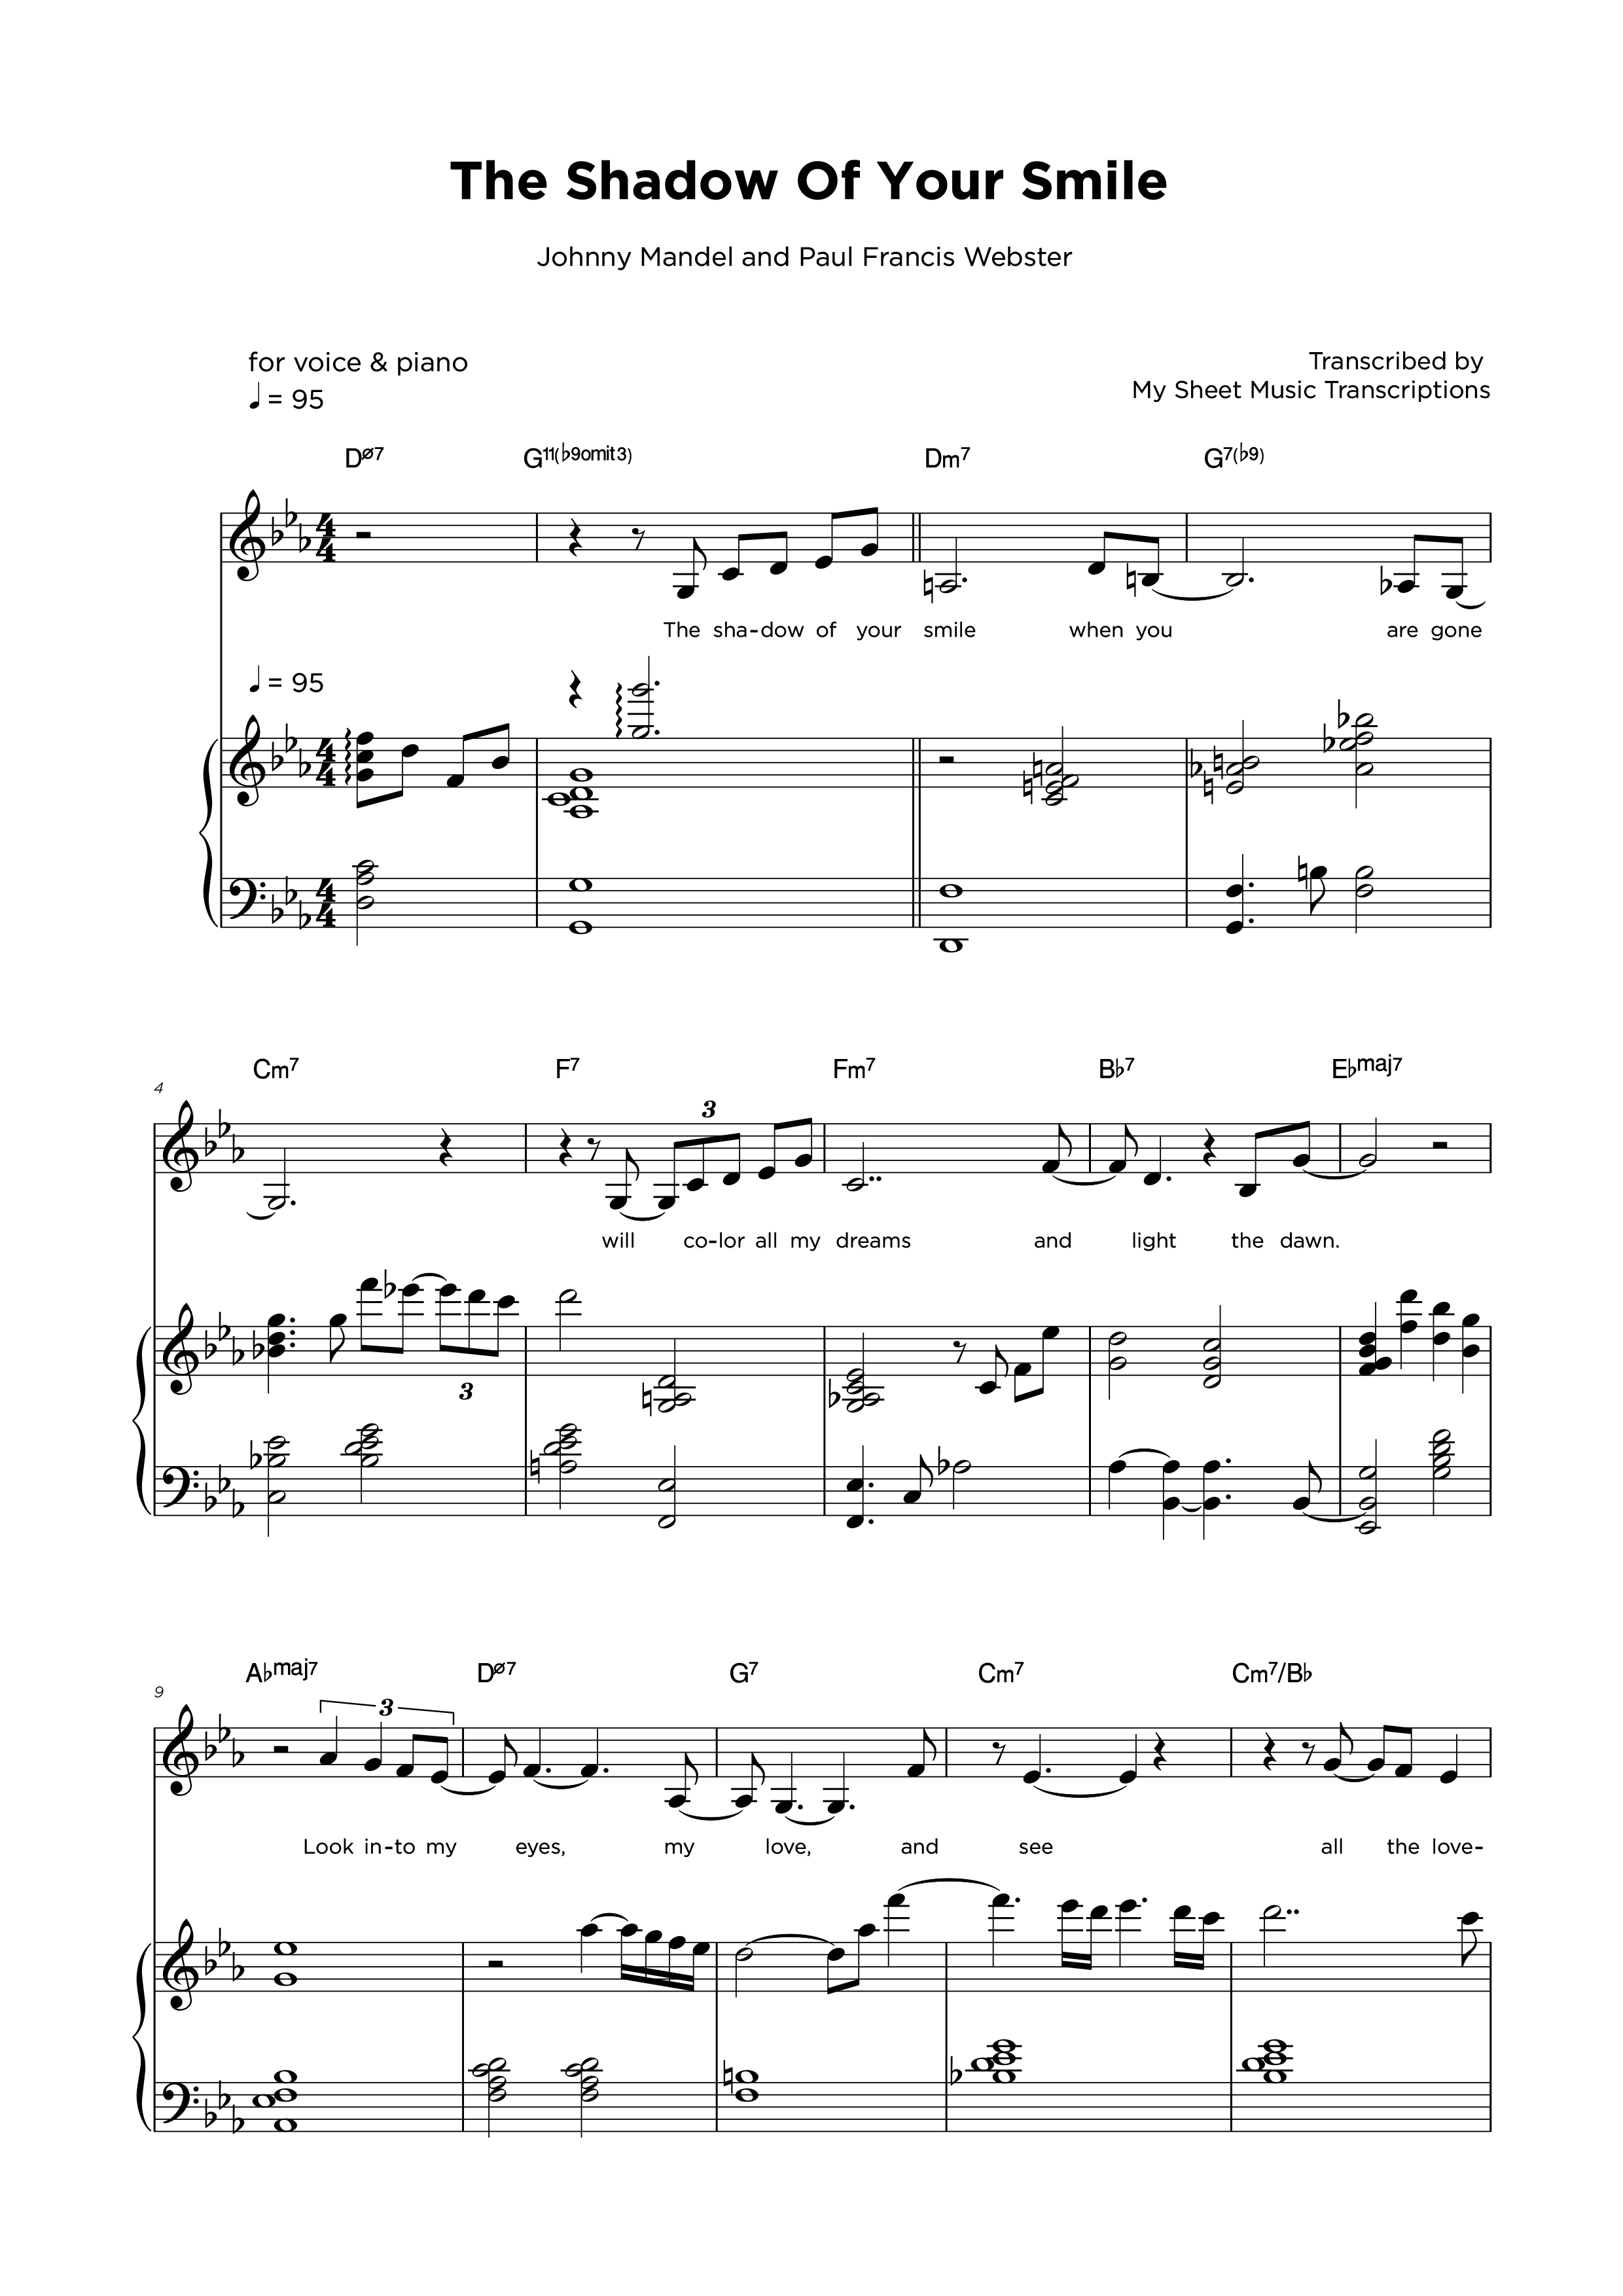 The Shadow of your smile - Piano & Vocal sheet music